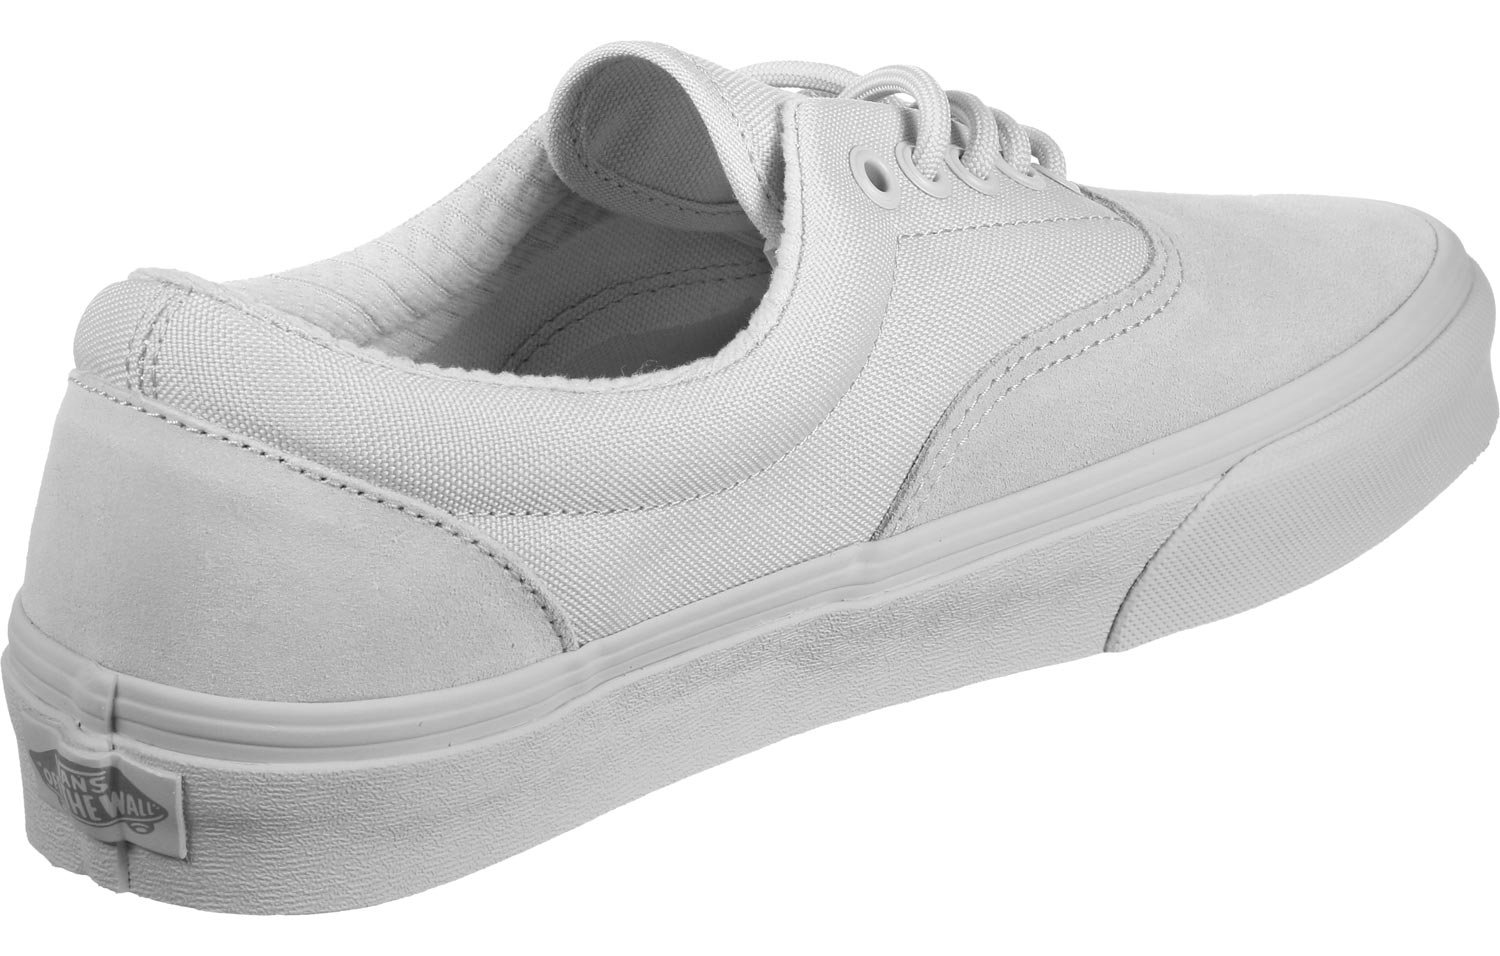 Vans Unisex Era Skate Shoes, Classic Low-Top Lace-up Style in Durable Double-Stitched Canvas and Original Waffle Outsole (11 Womens/ 9.5 Mens, Micro Chip)